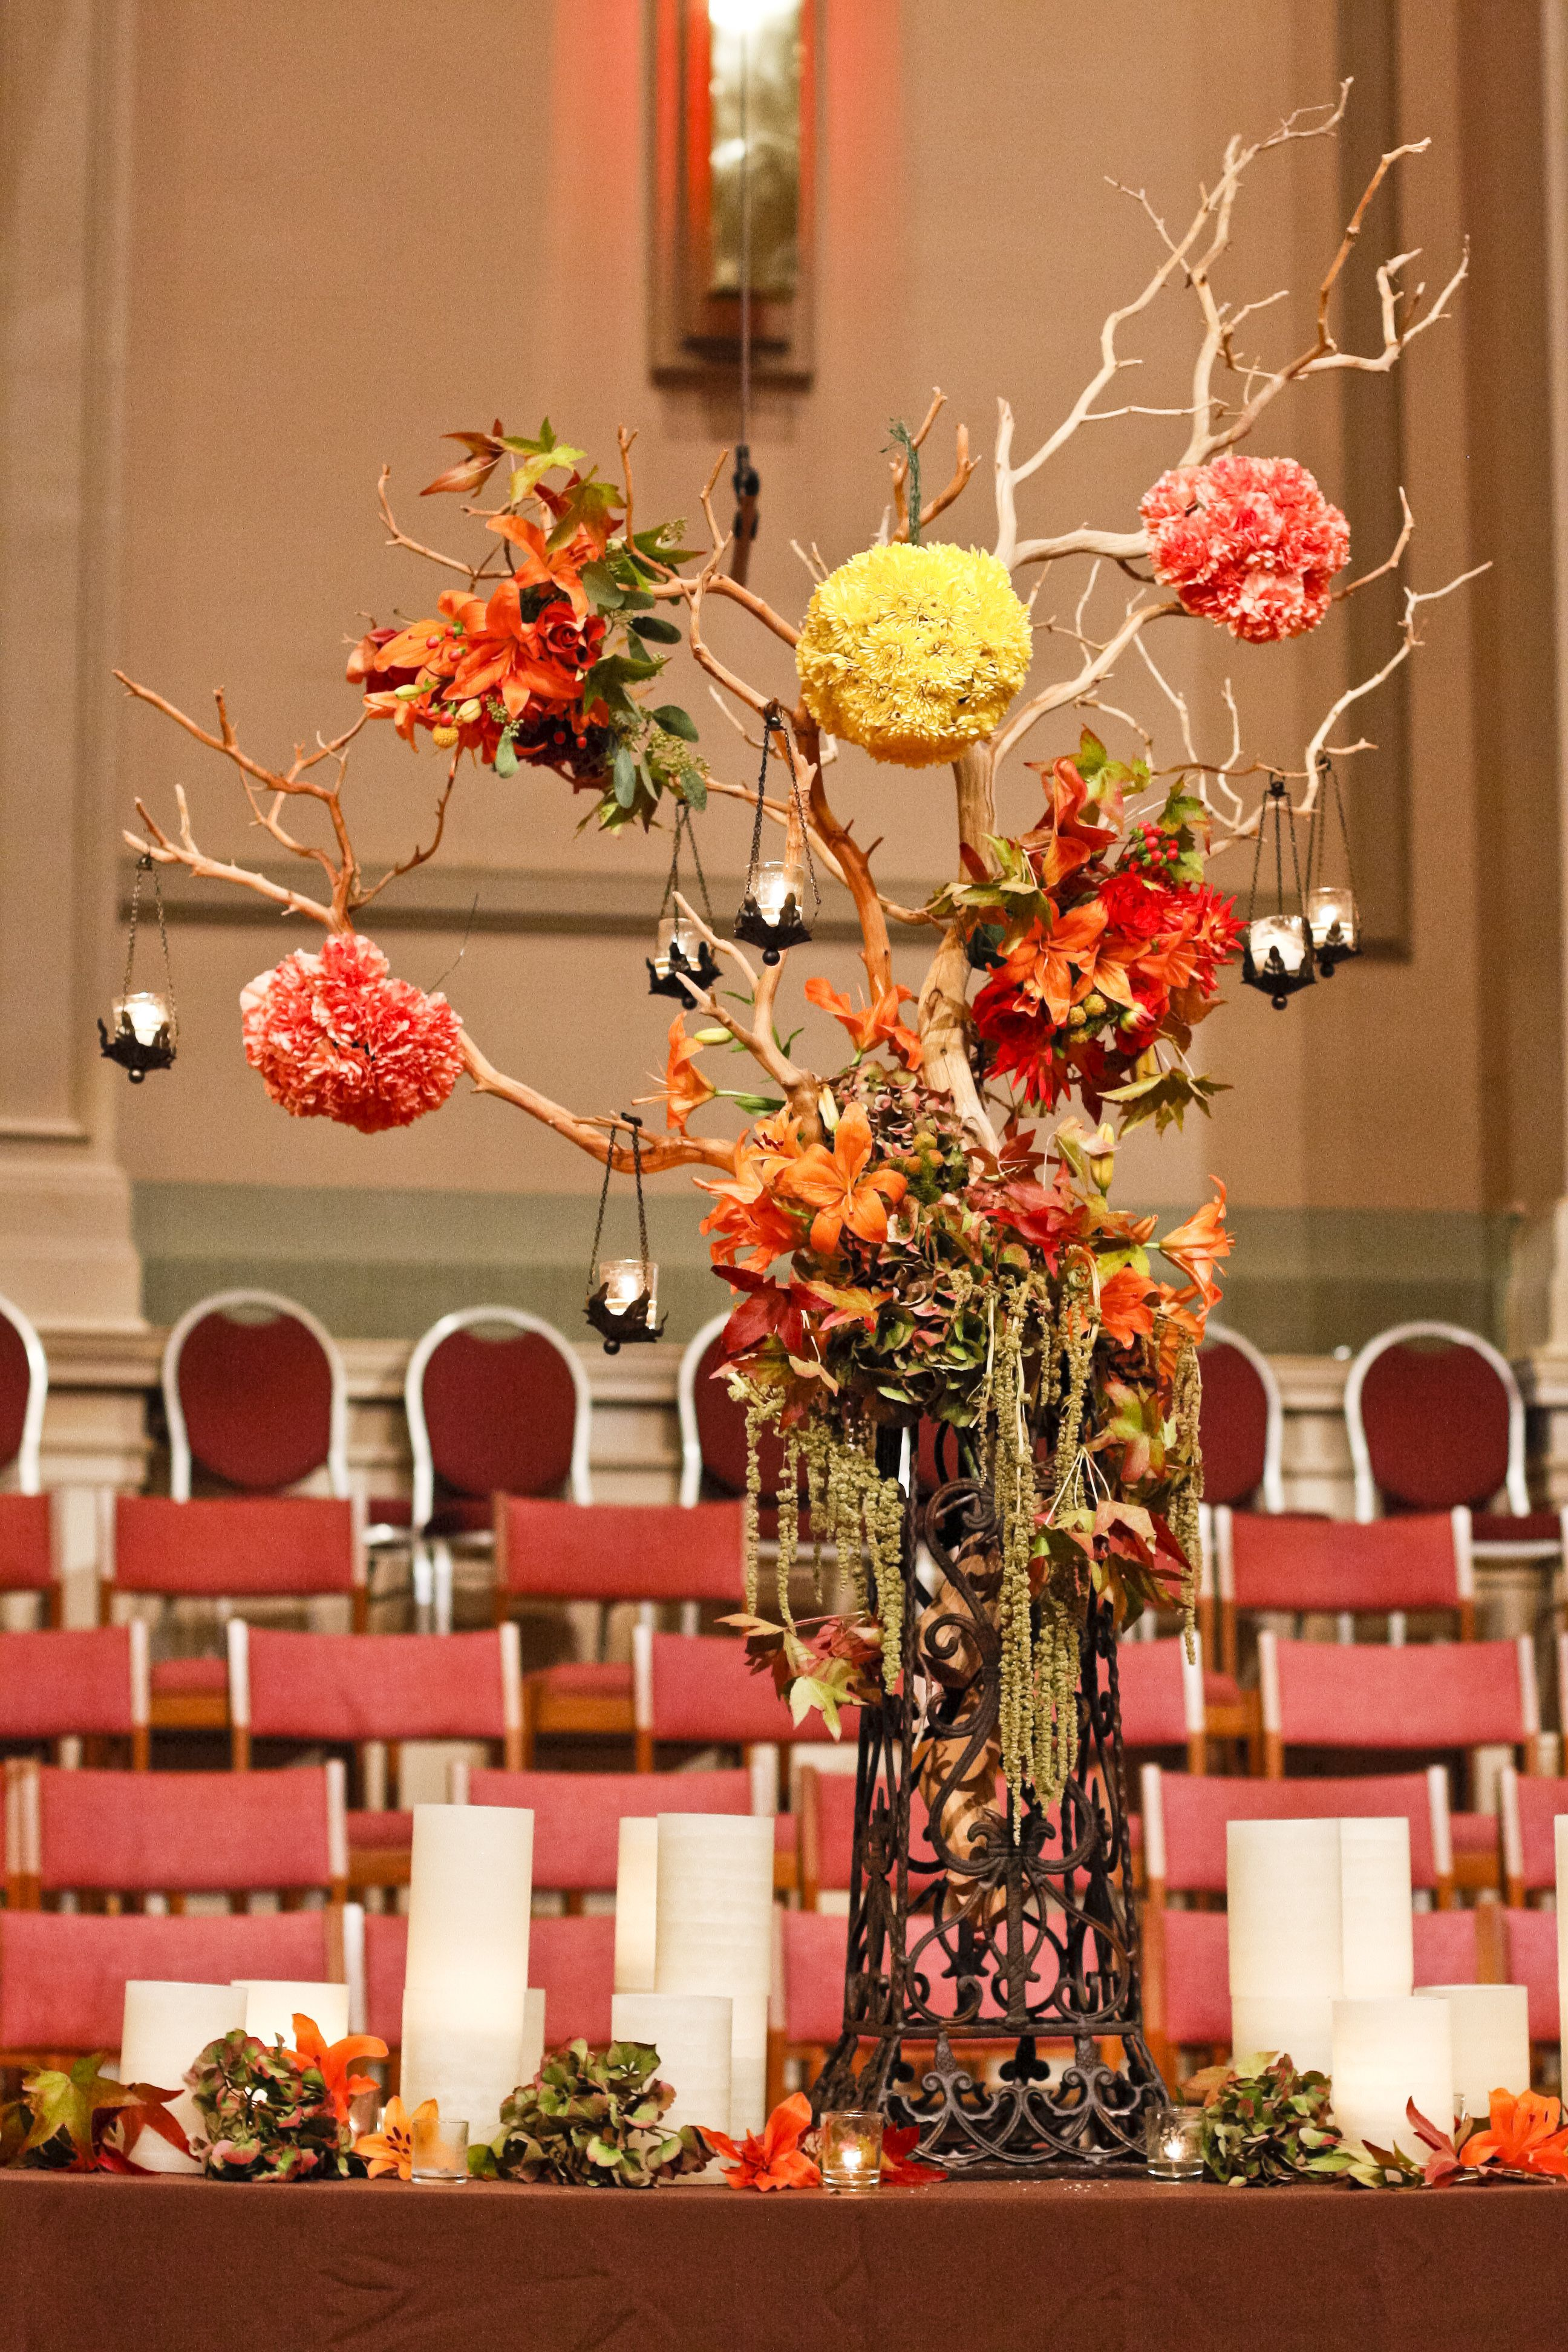 Manzanita autumn wedding ceremony decor by Southern Event Planners, Memphis Wedding